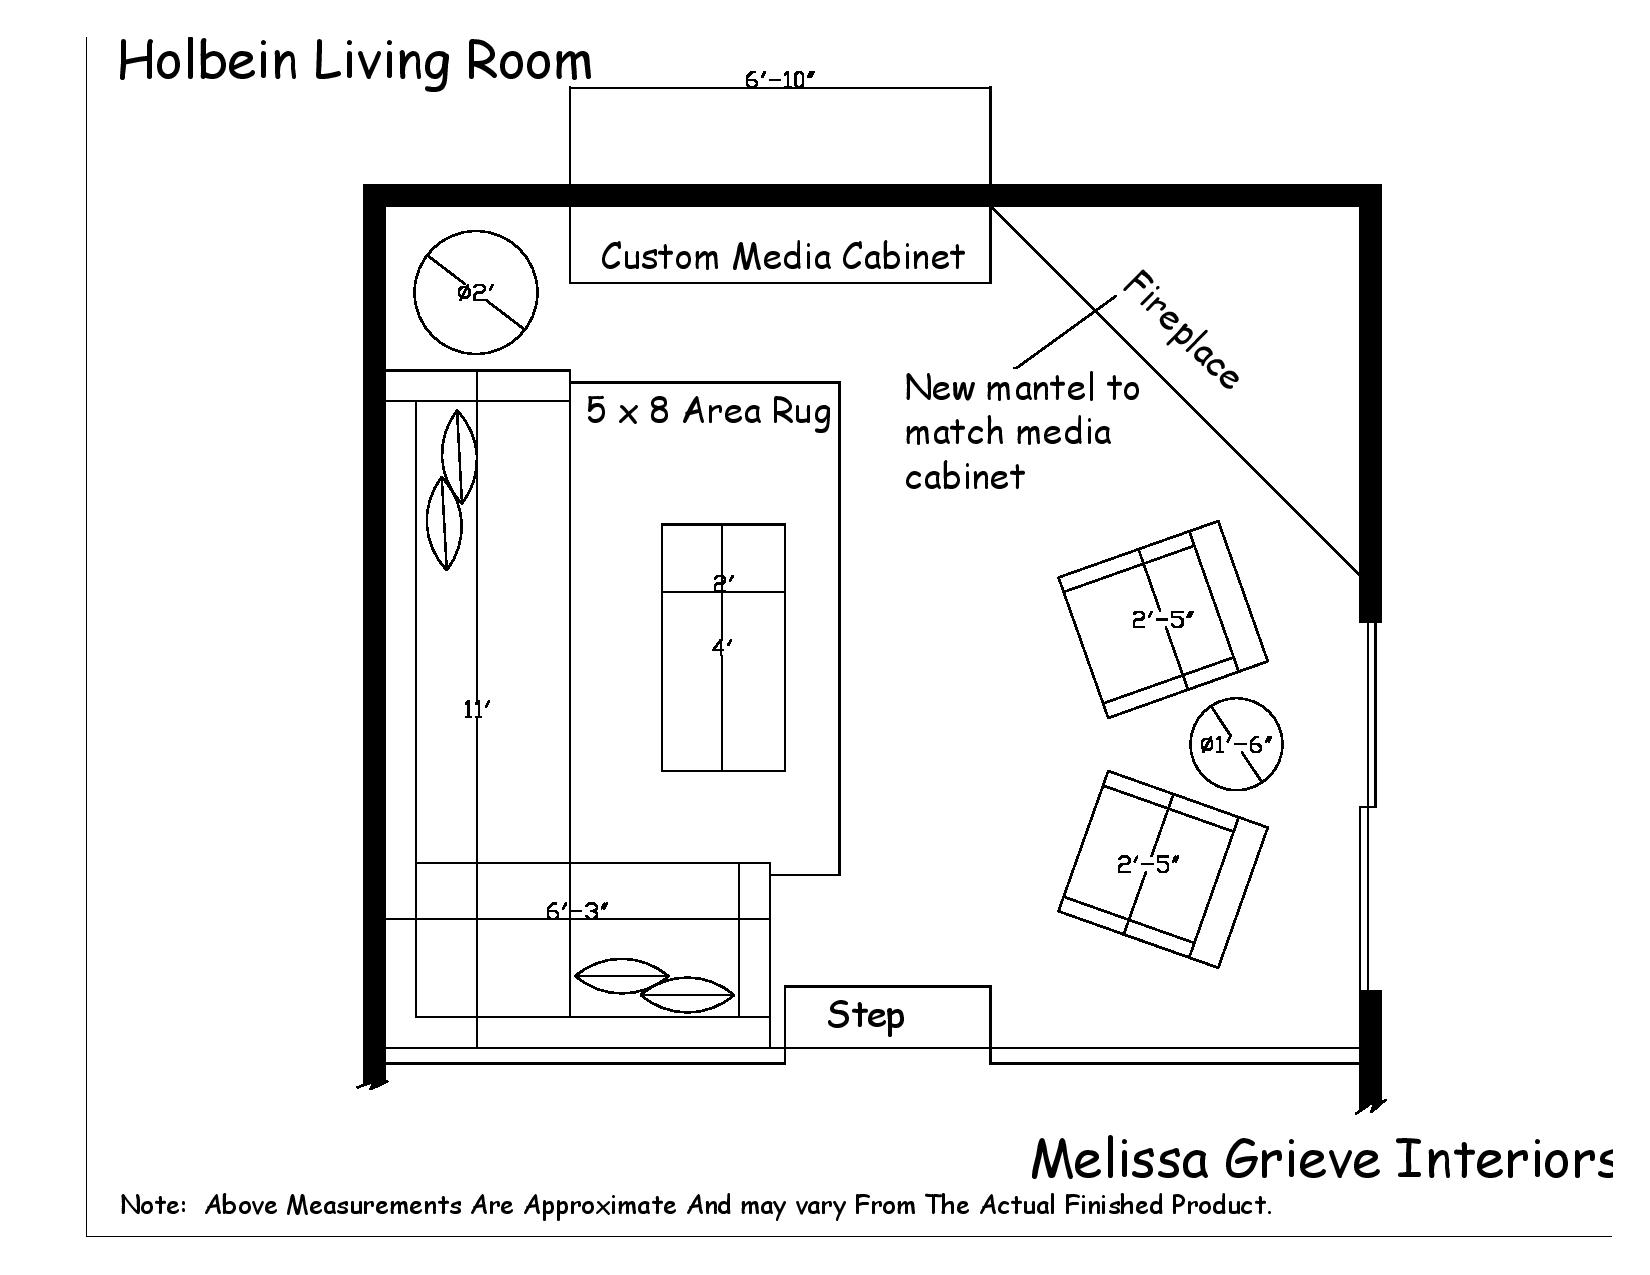 Holbein Living Room-page-001.jpg